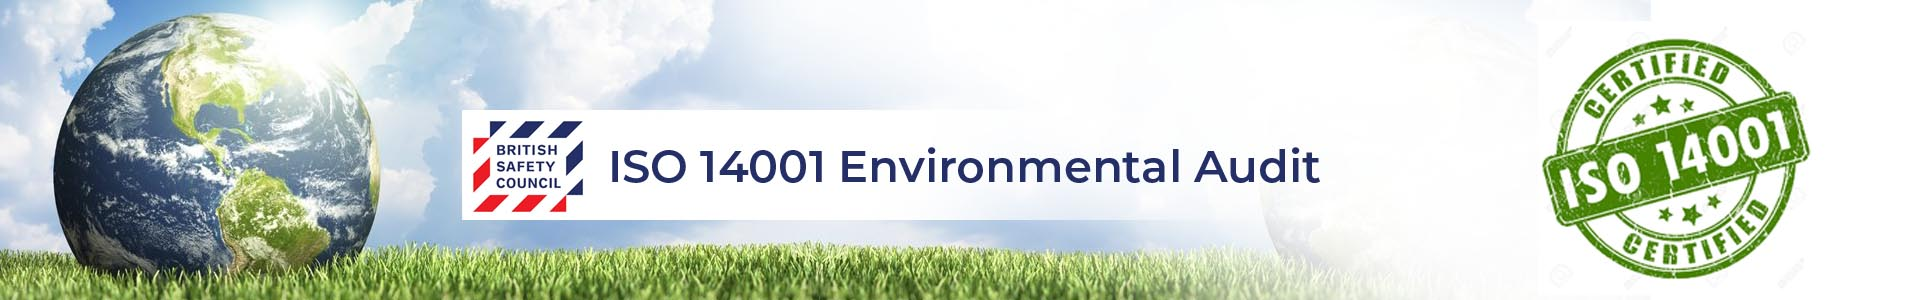 iso-14001-environmental-audit